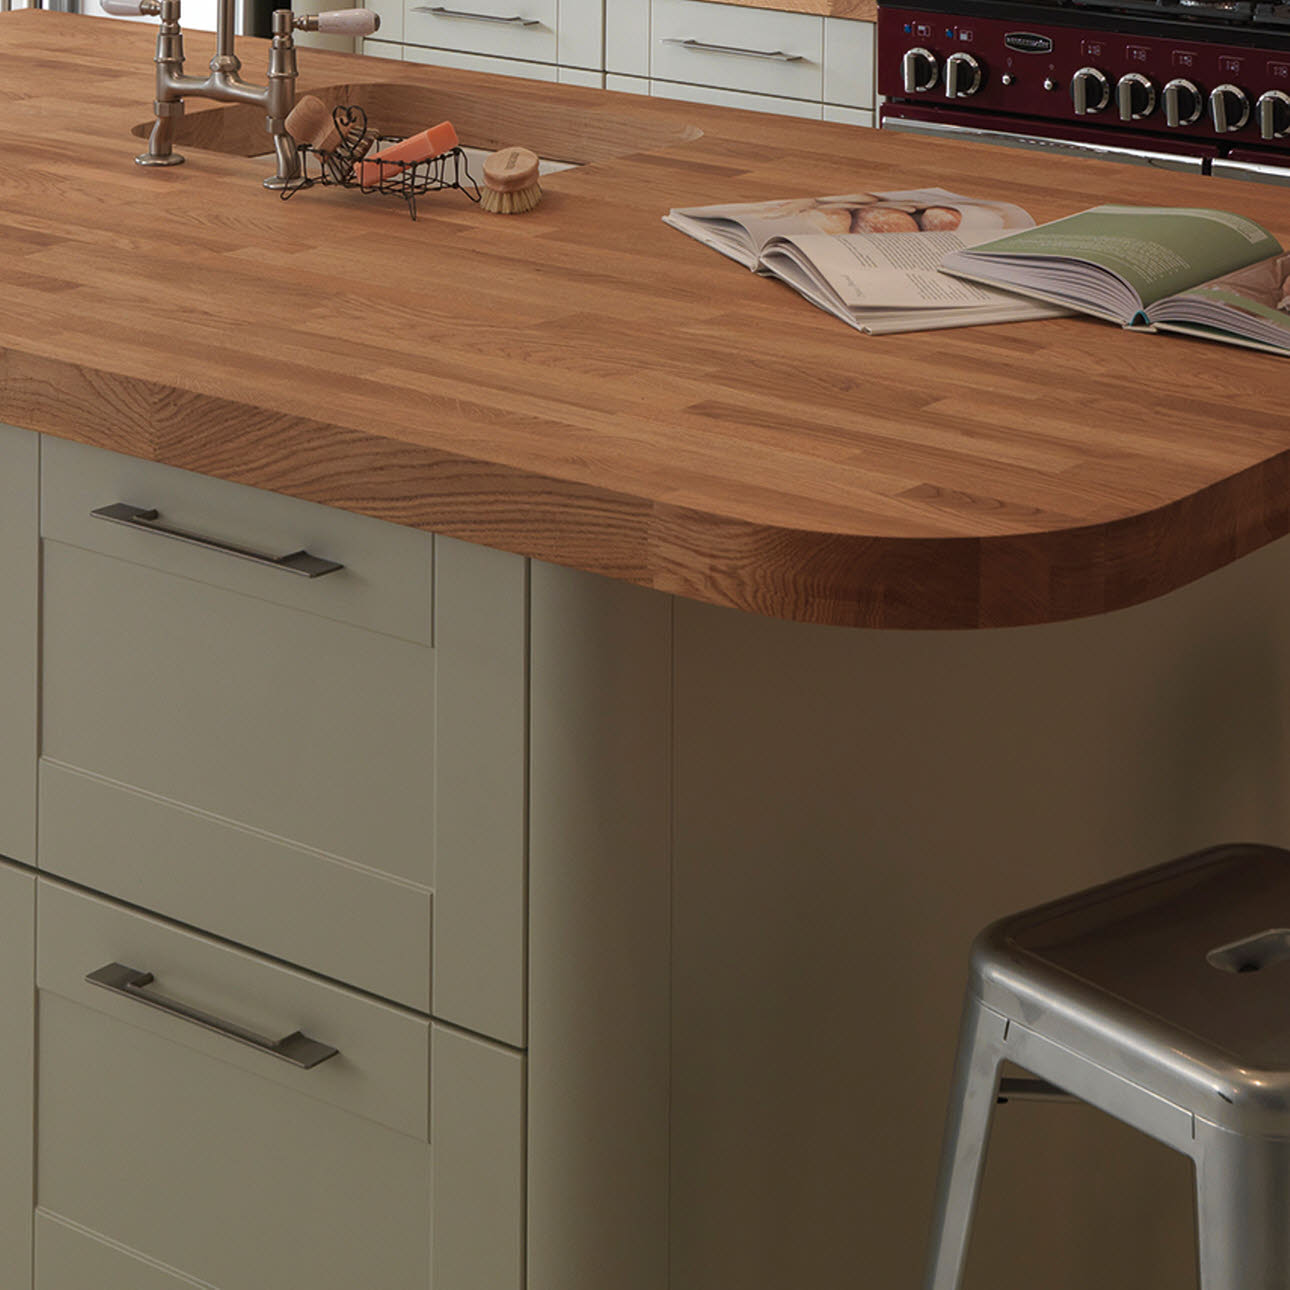 Magnet Bespoke Solid Wood Worktop